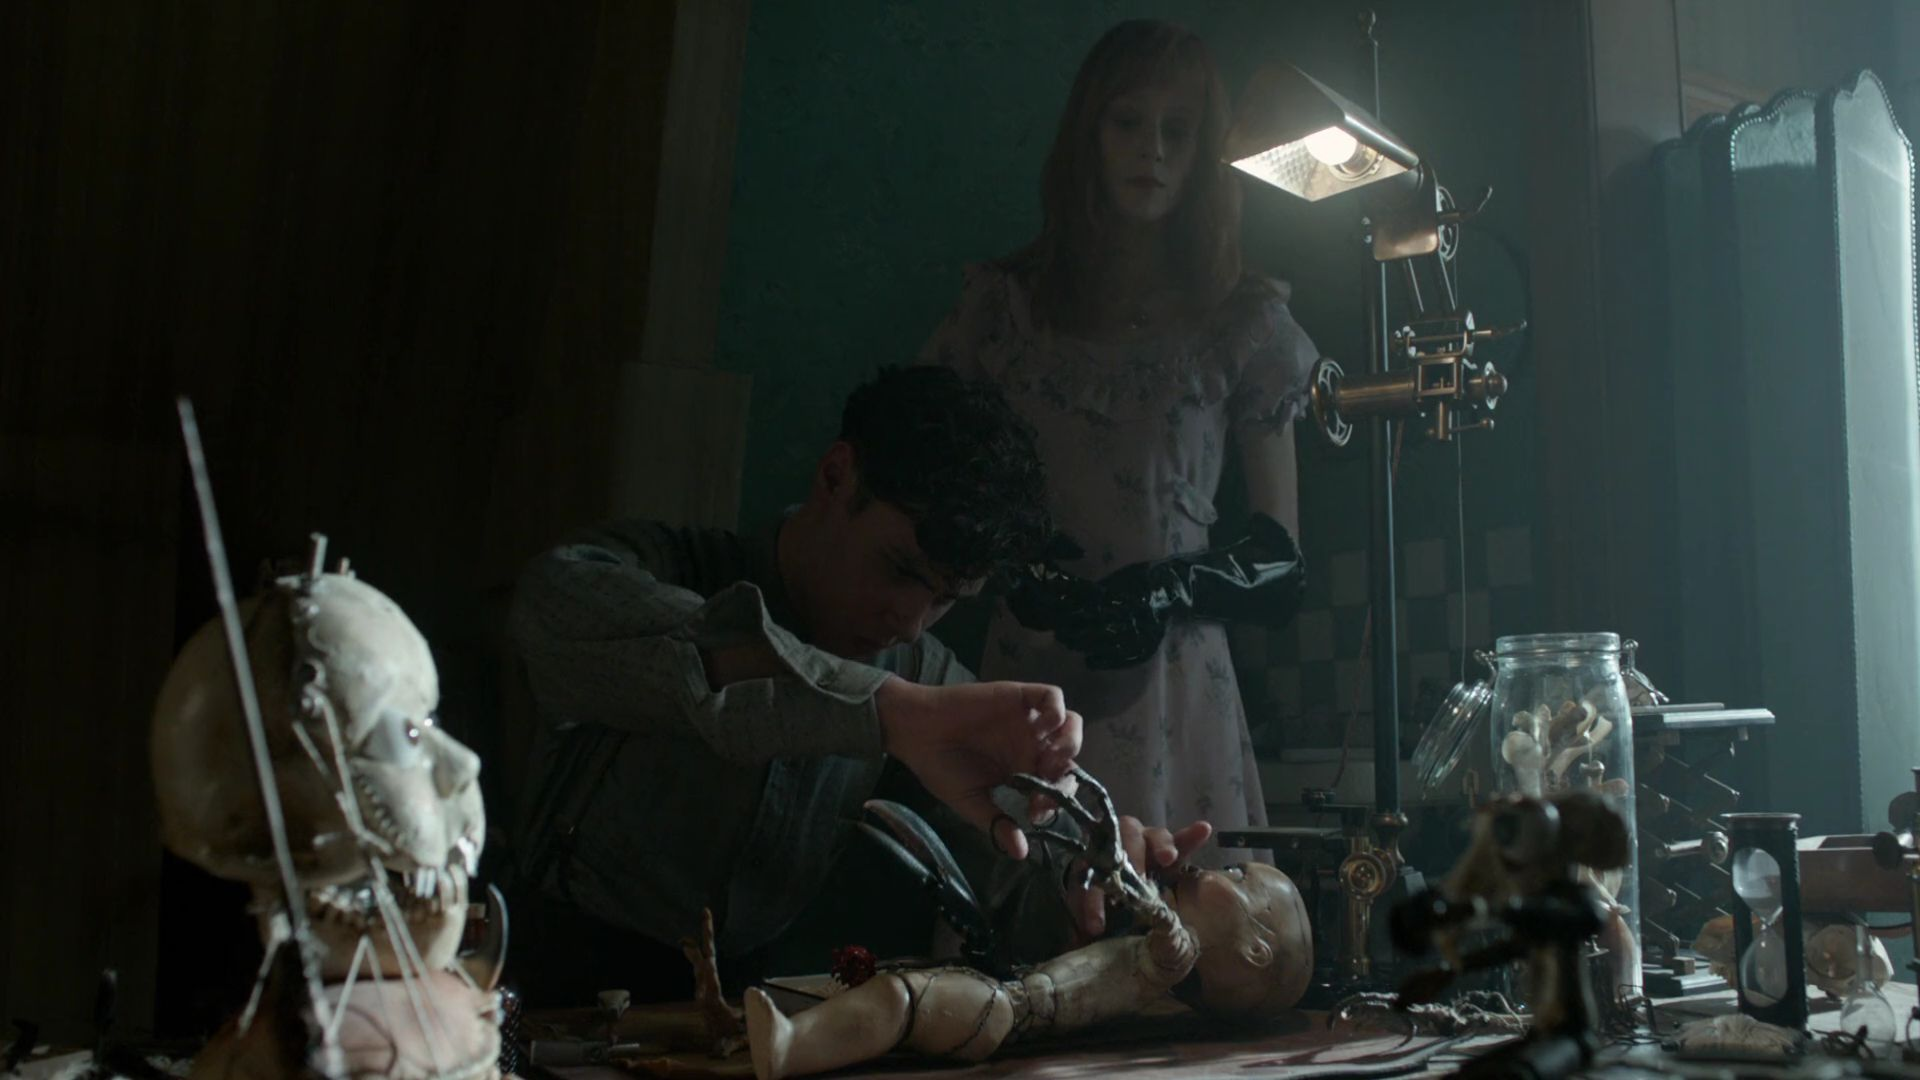 Screenshot from Miss Peregrine's Home for Peculiar Children (2016) trailer.